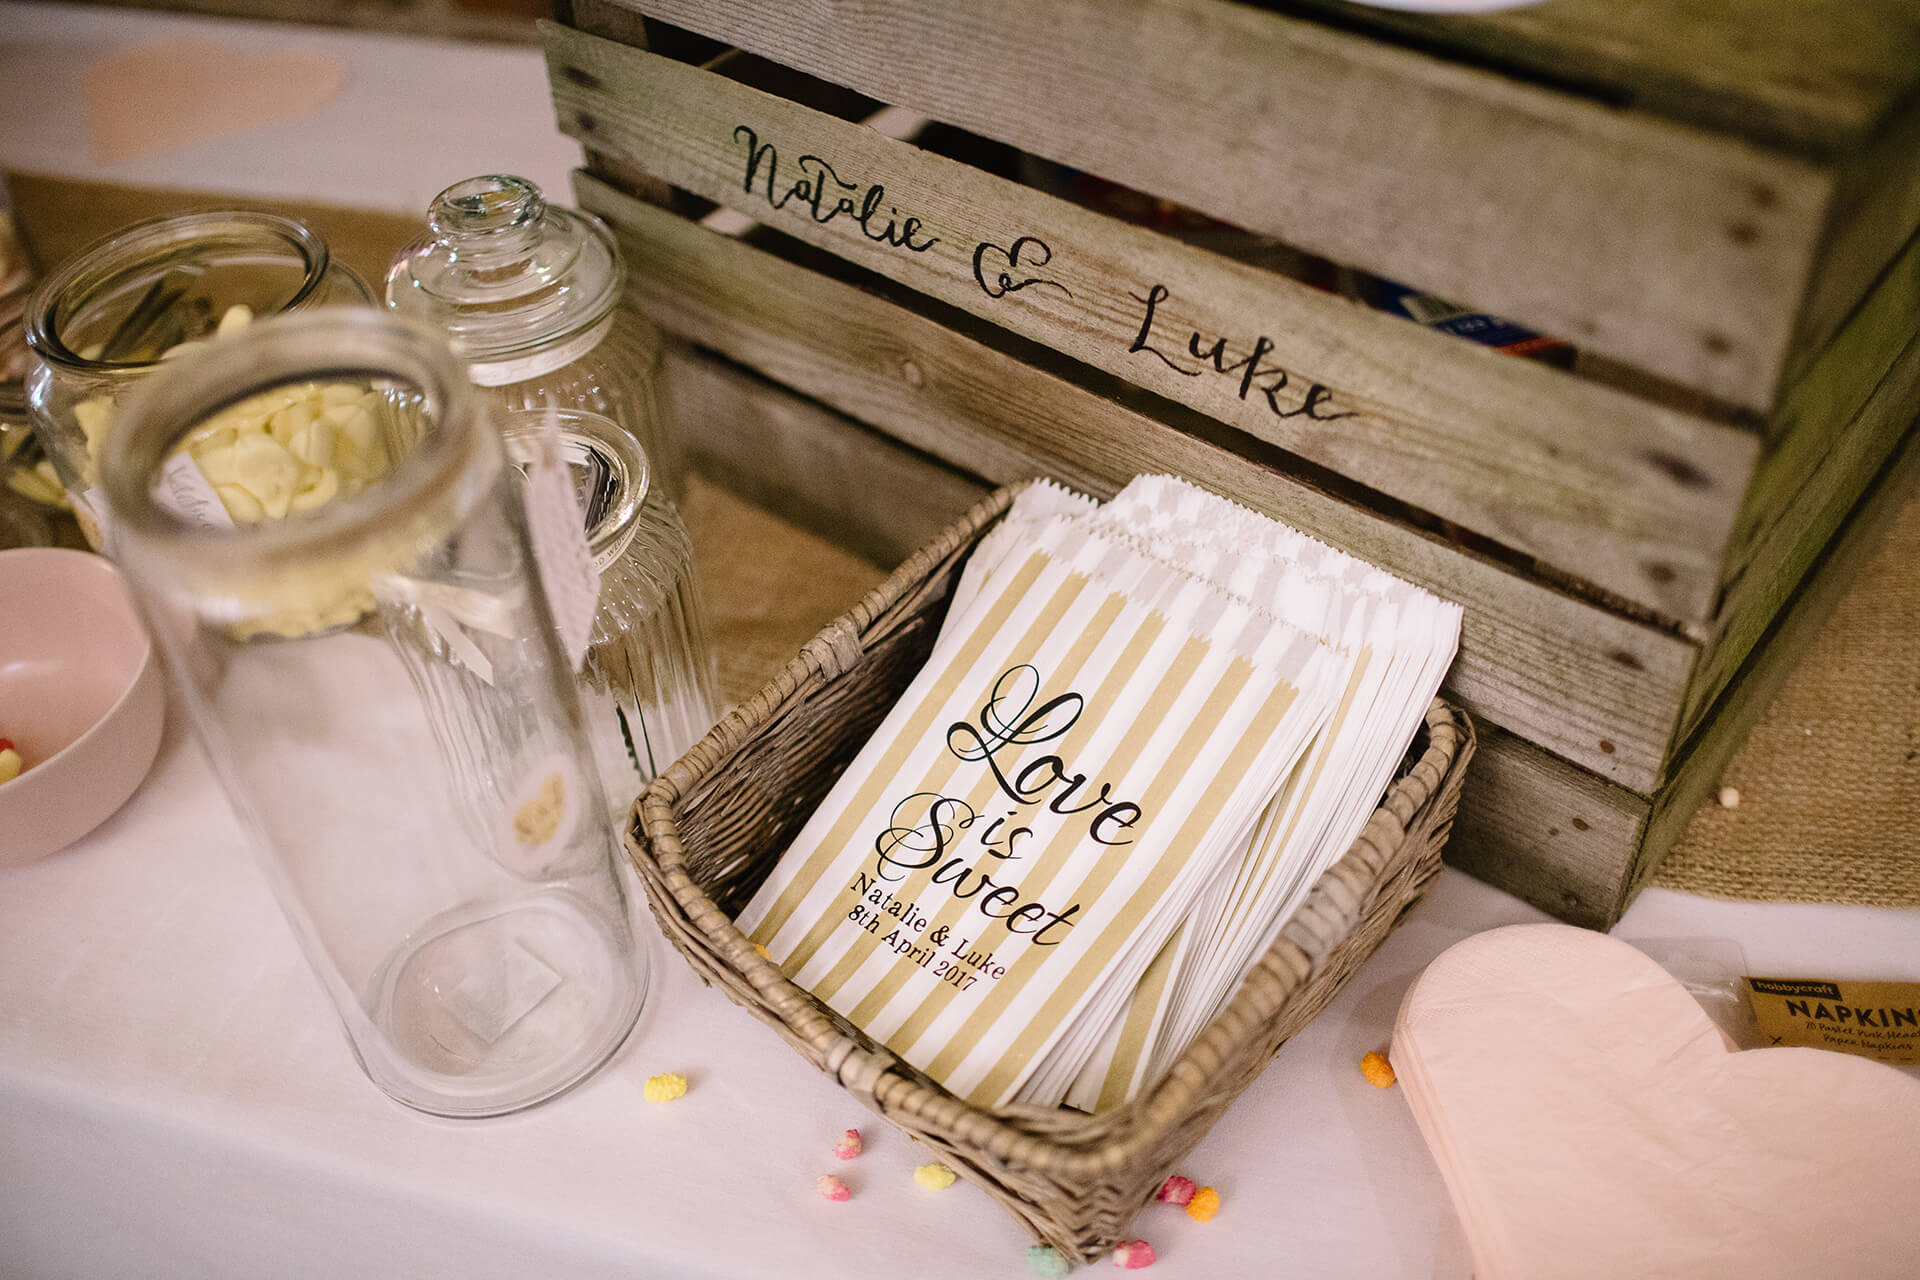 "Adorable personolised sweet bags from Natalie and Luke's wedding, captured by <a href=""http://www.joestenson.co.uk/"">Joe Stenson</a>."